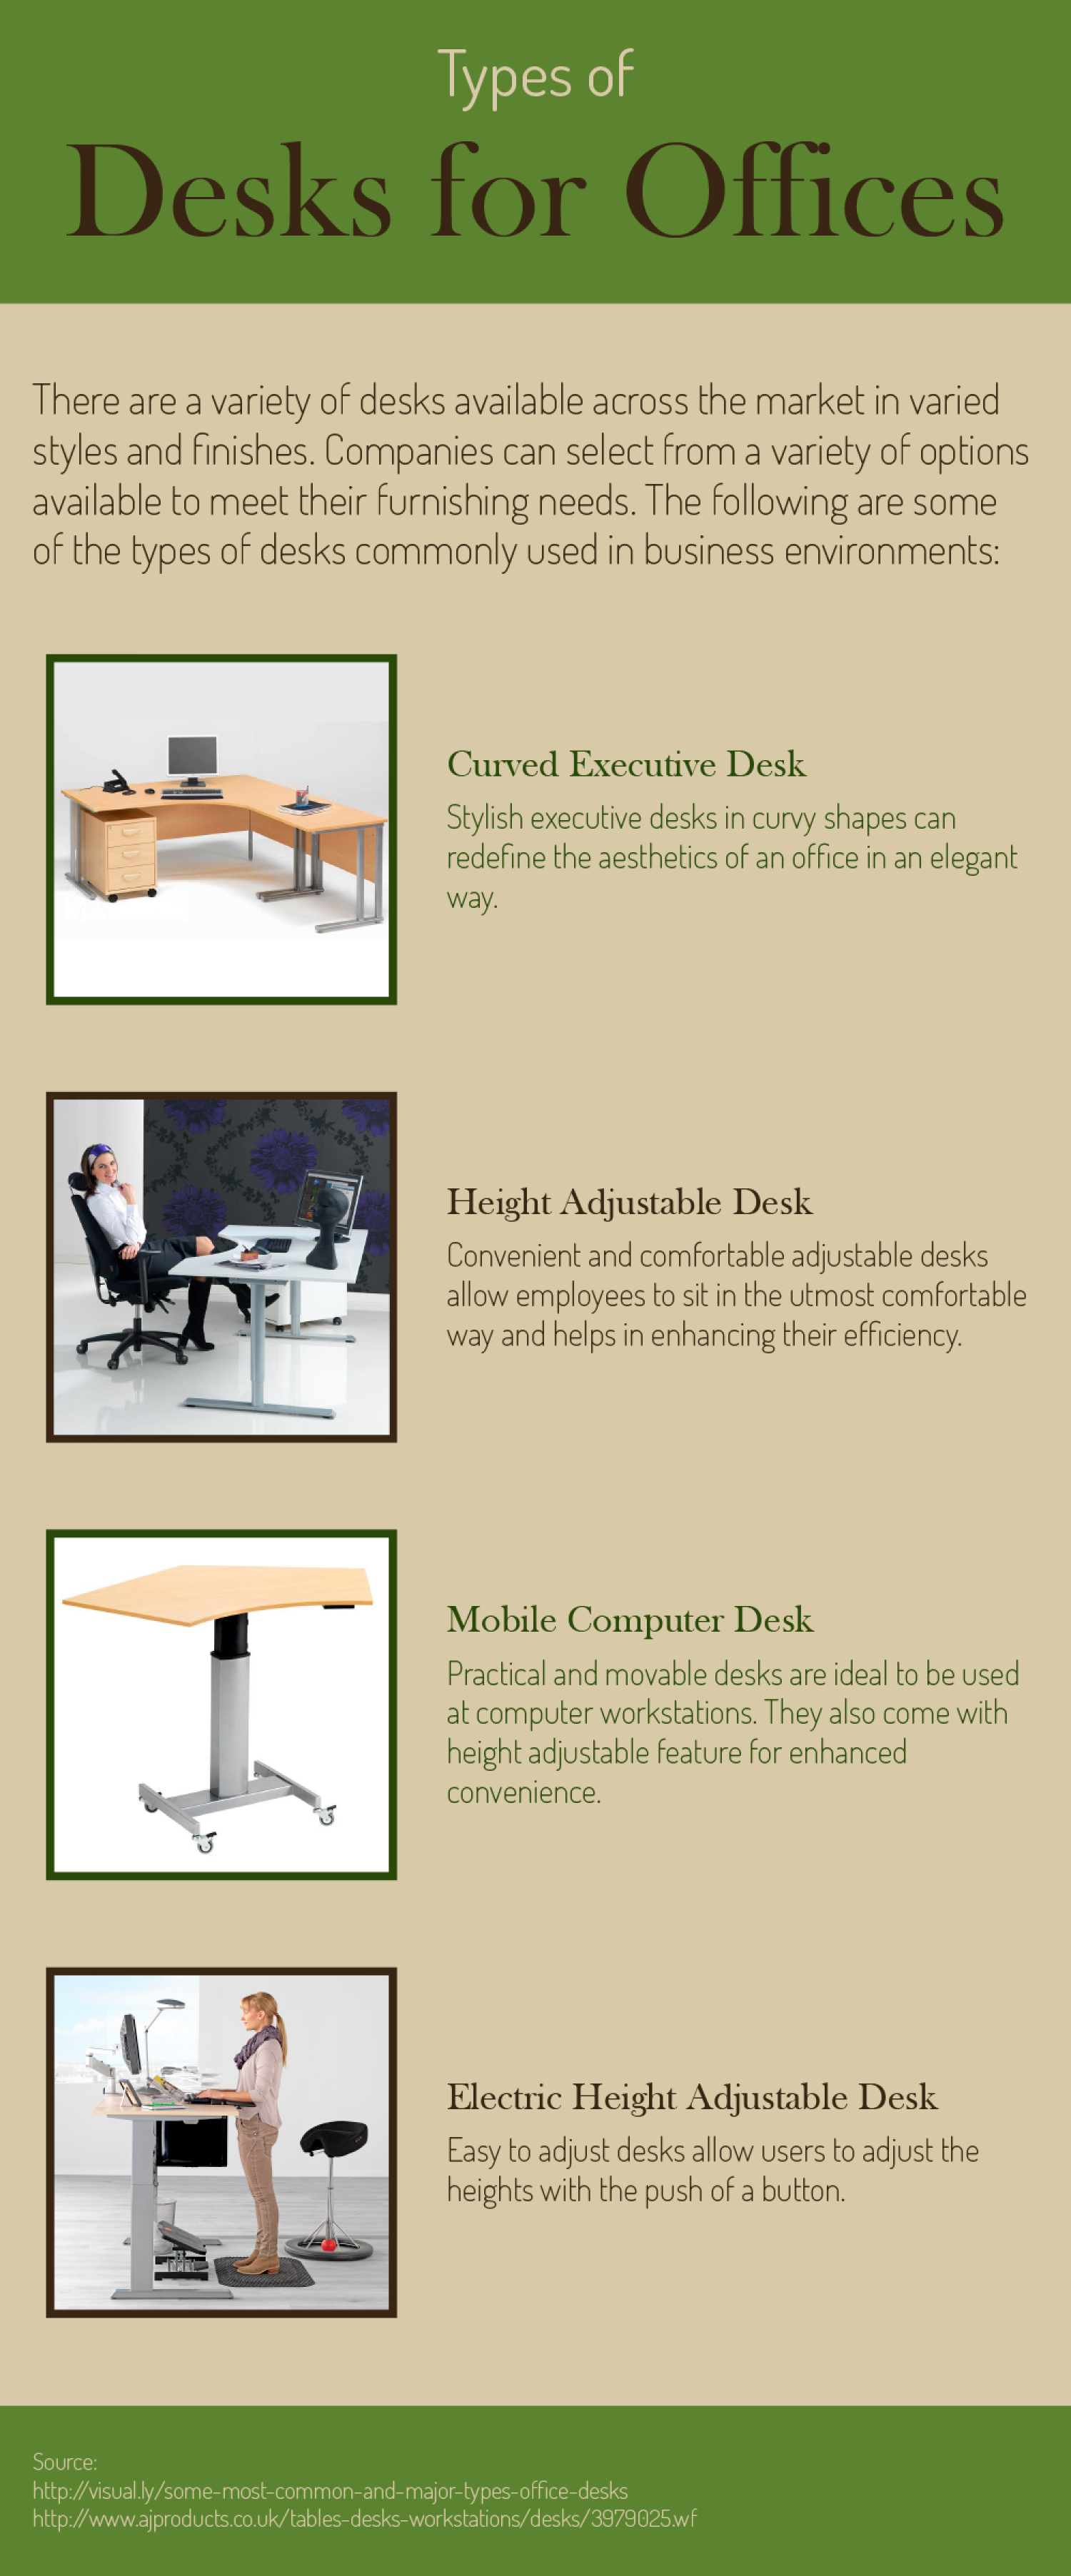 Types Of Desks New Types Of Desks For Offices  Visual.ly Design Decoration